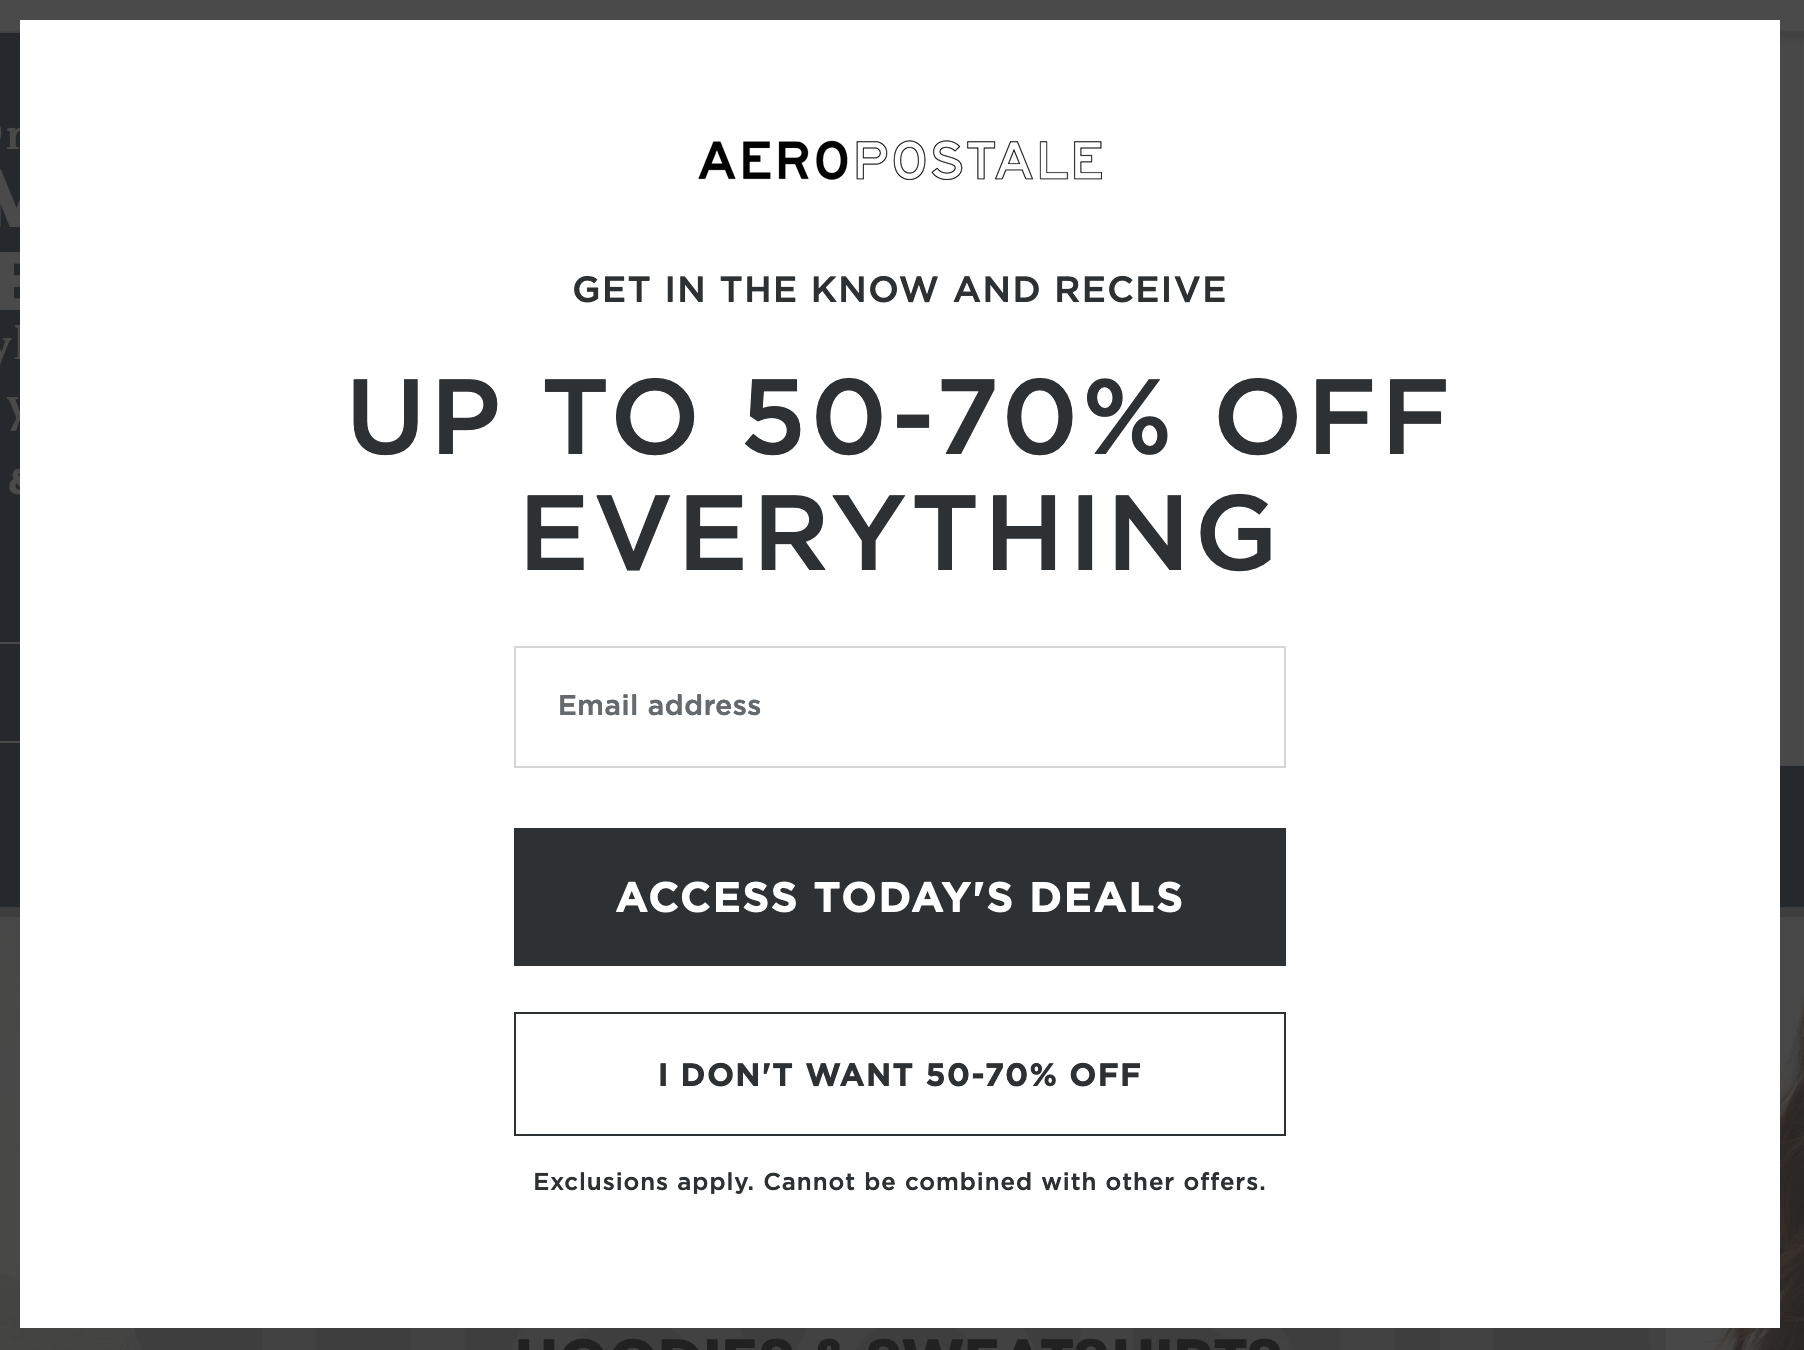 Aeropostale Military Veteran Discounts